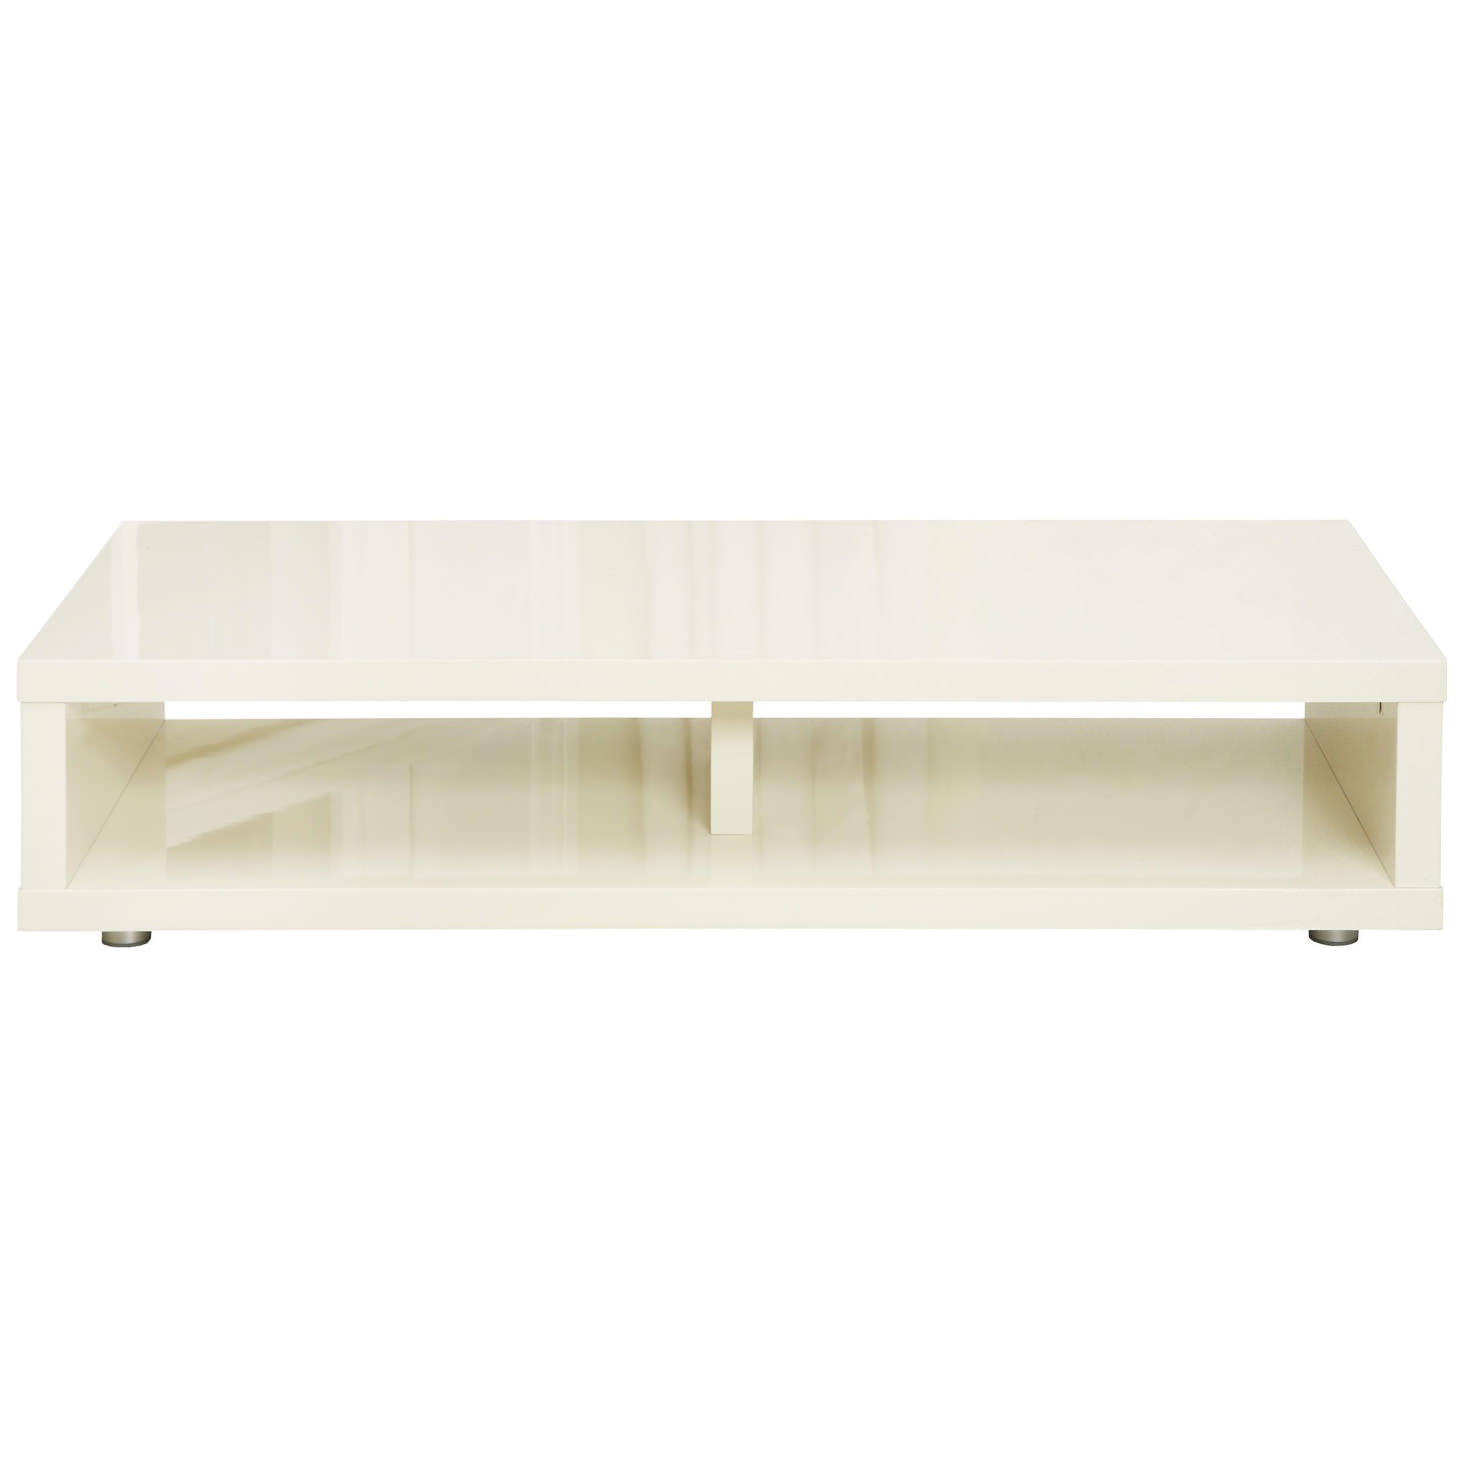 Tv Tables Menard High Gloss Tv Unit: High Gloss Flat Screen Plasma LCD TV Table Stand Cabinet